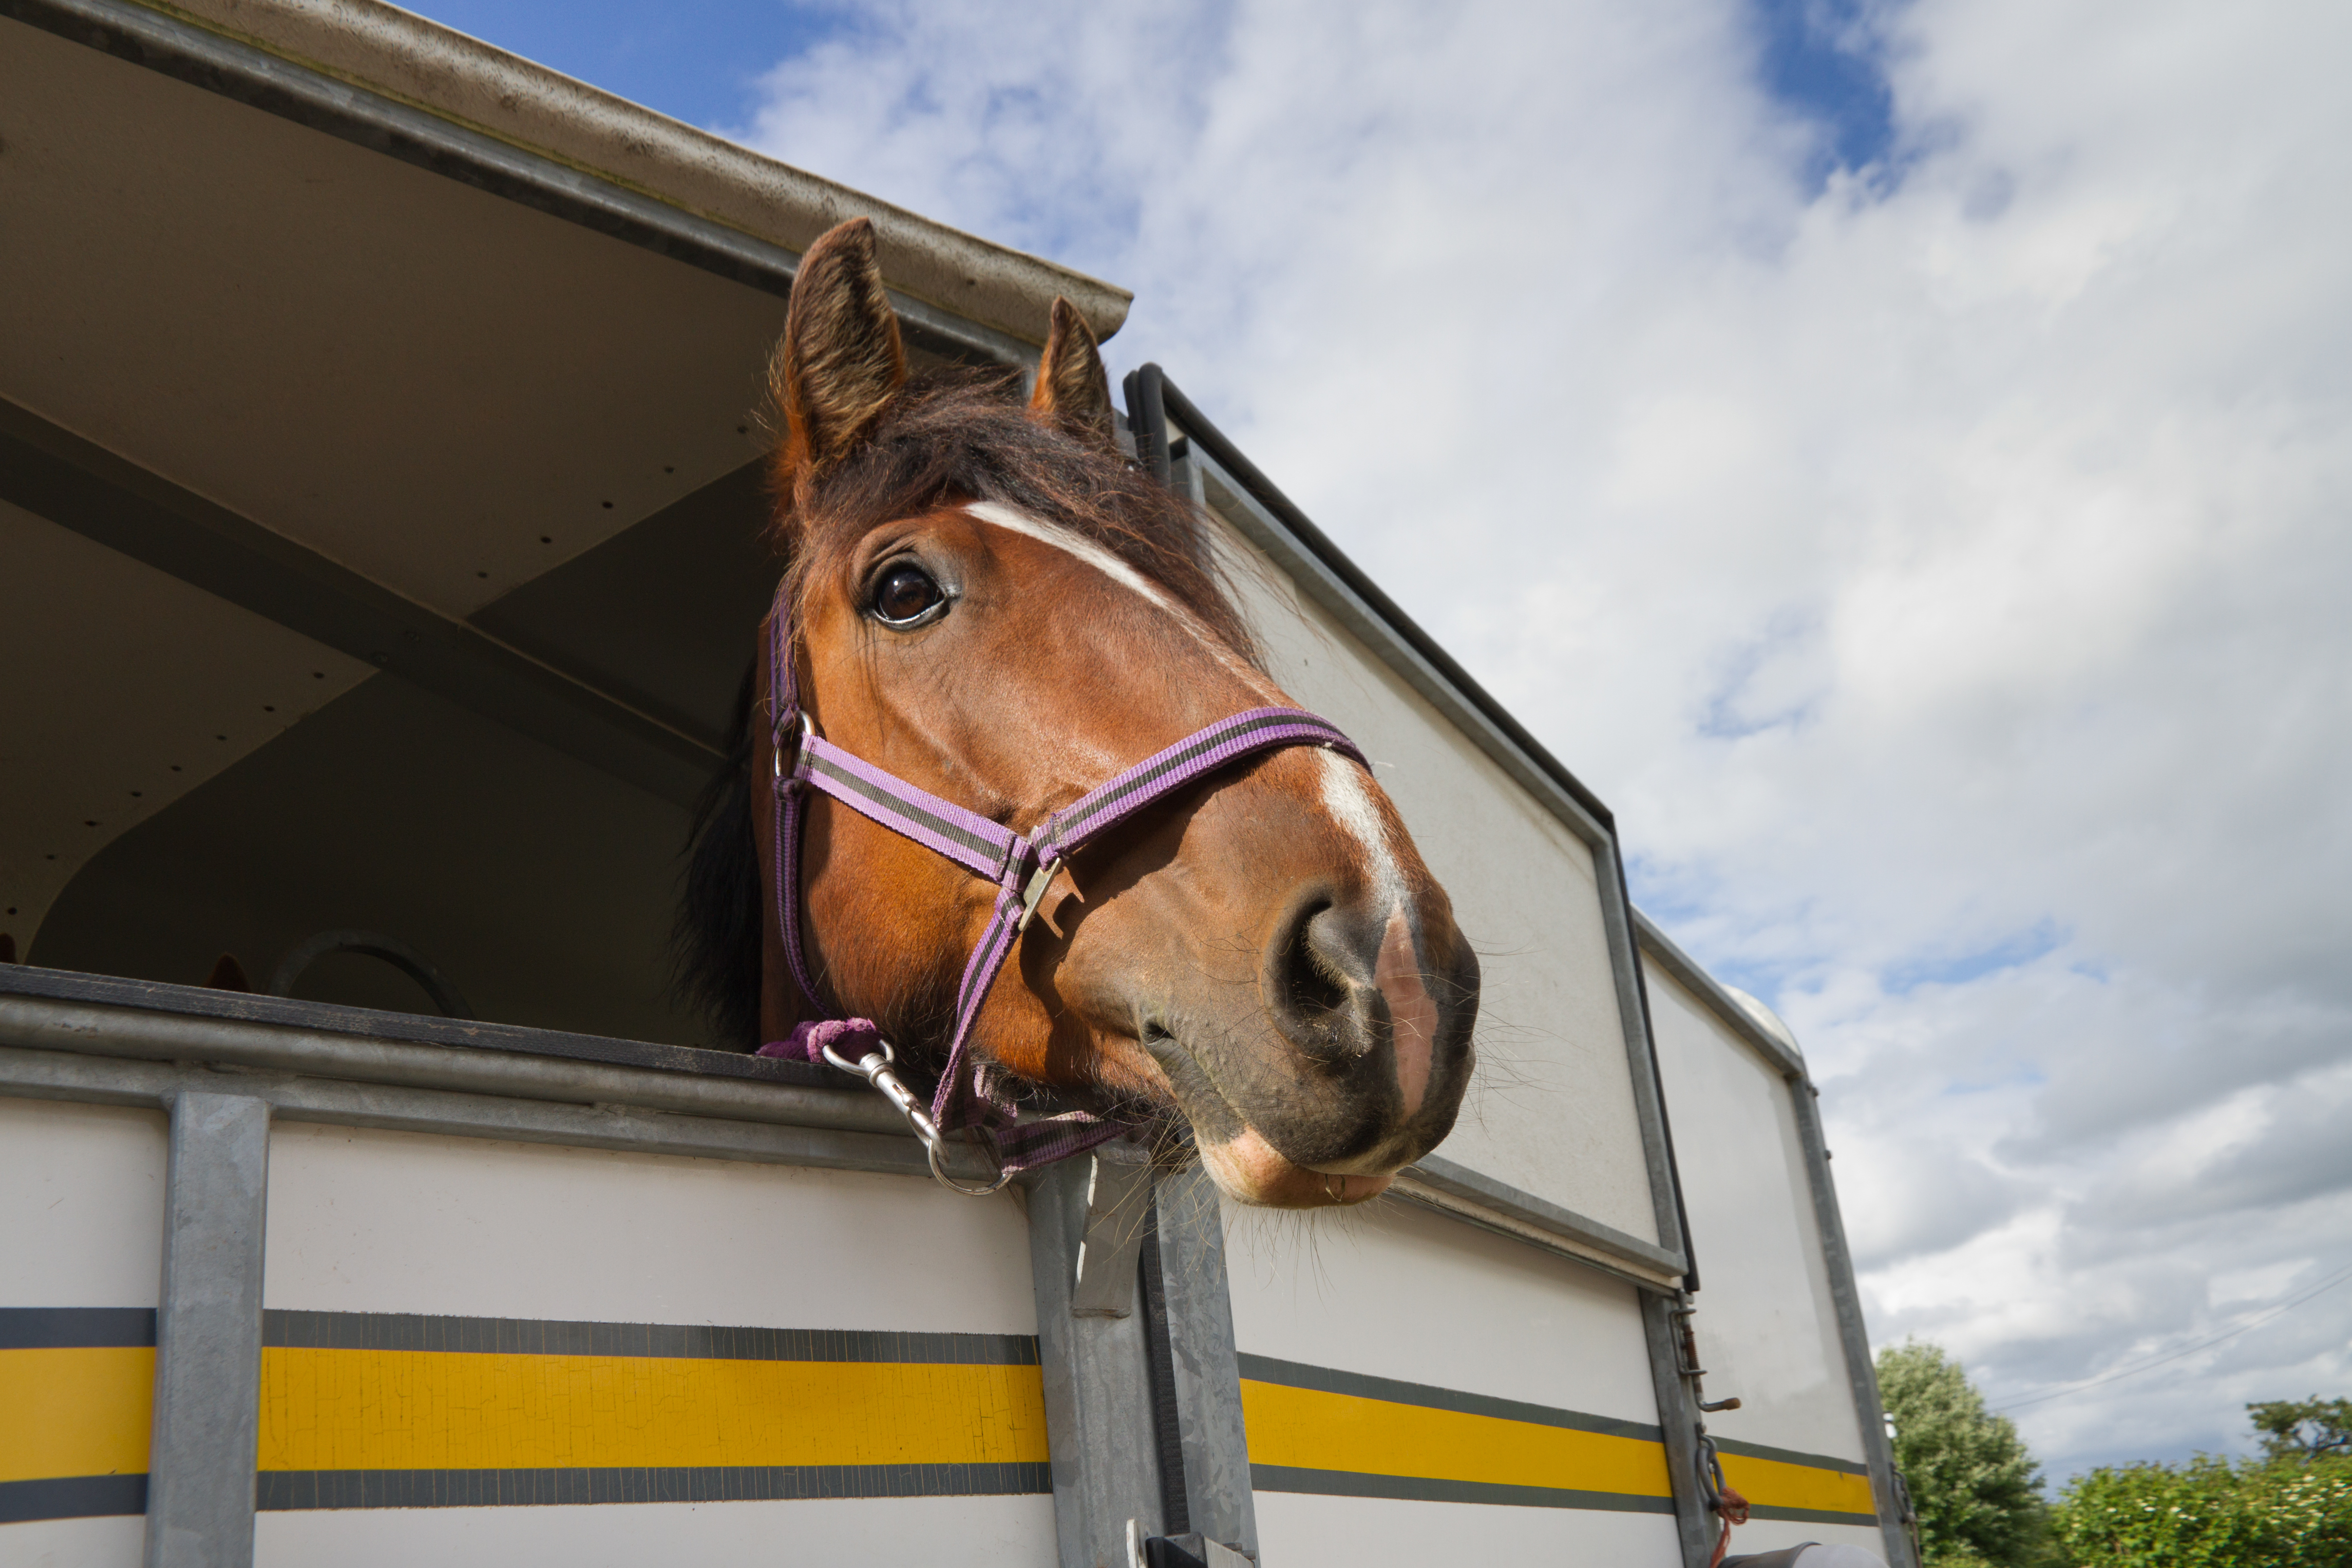 Why Won't My Horse Drink When Hauling or Away From Home?